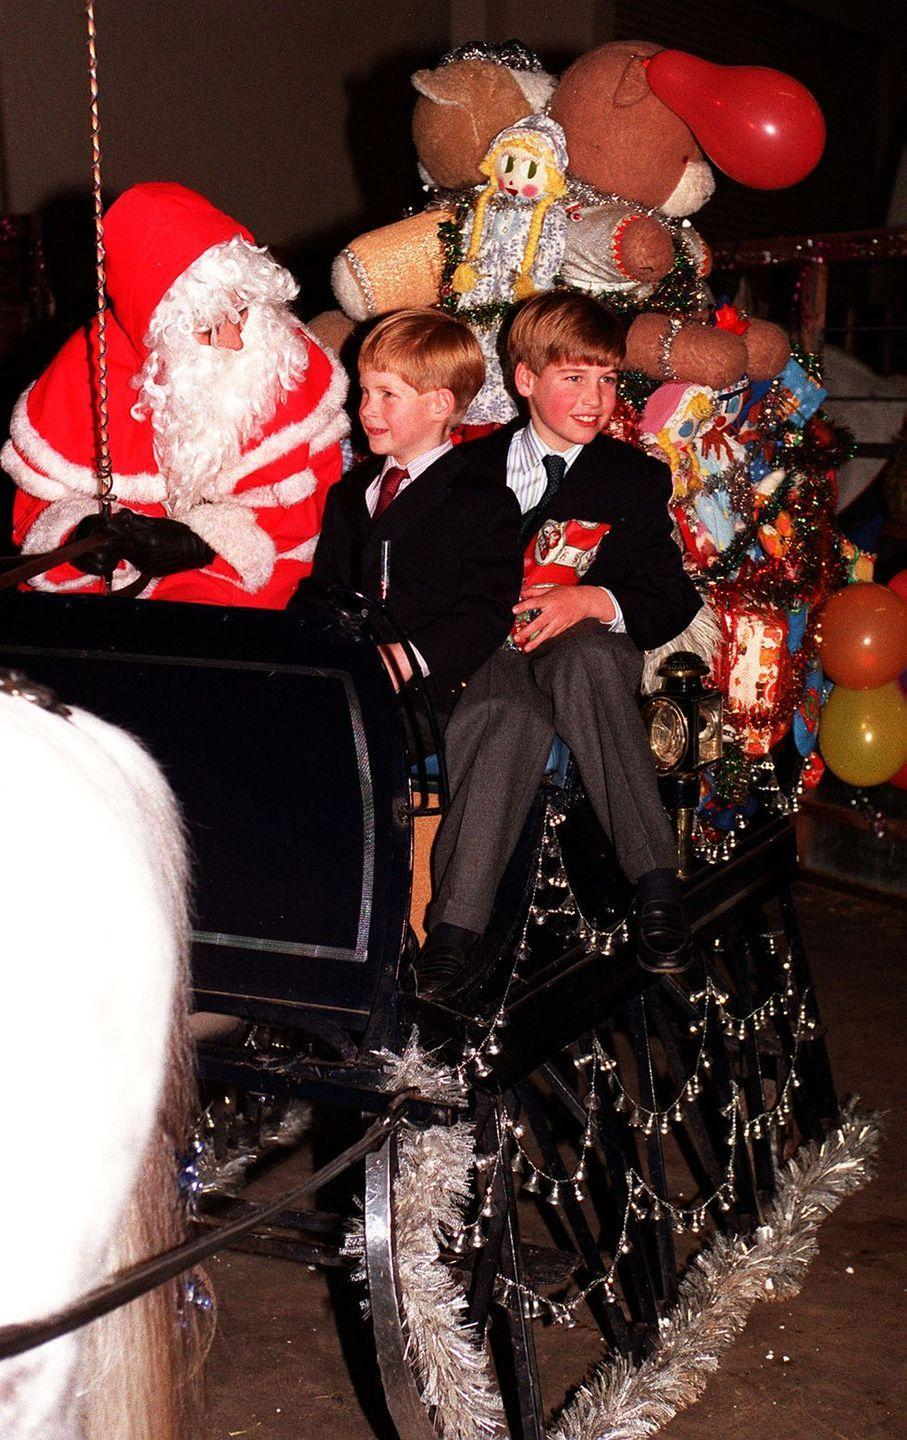 <p>Prince Harry and Prince William sit in a horse-drawn carriage with Santa.</p>